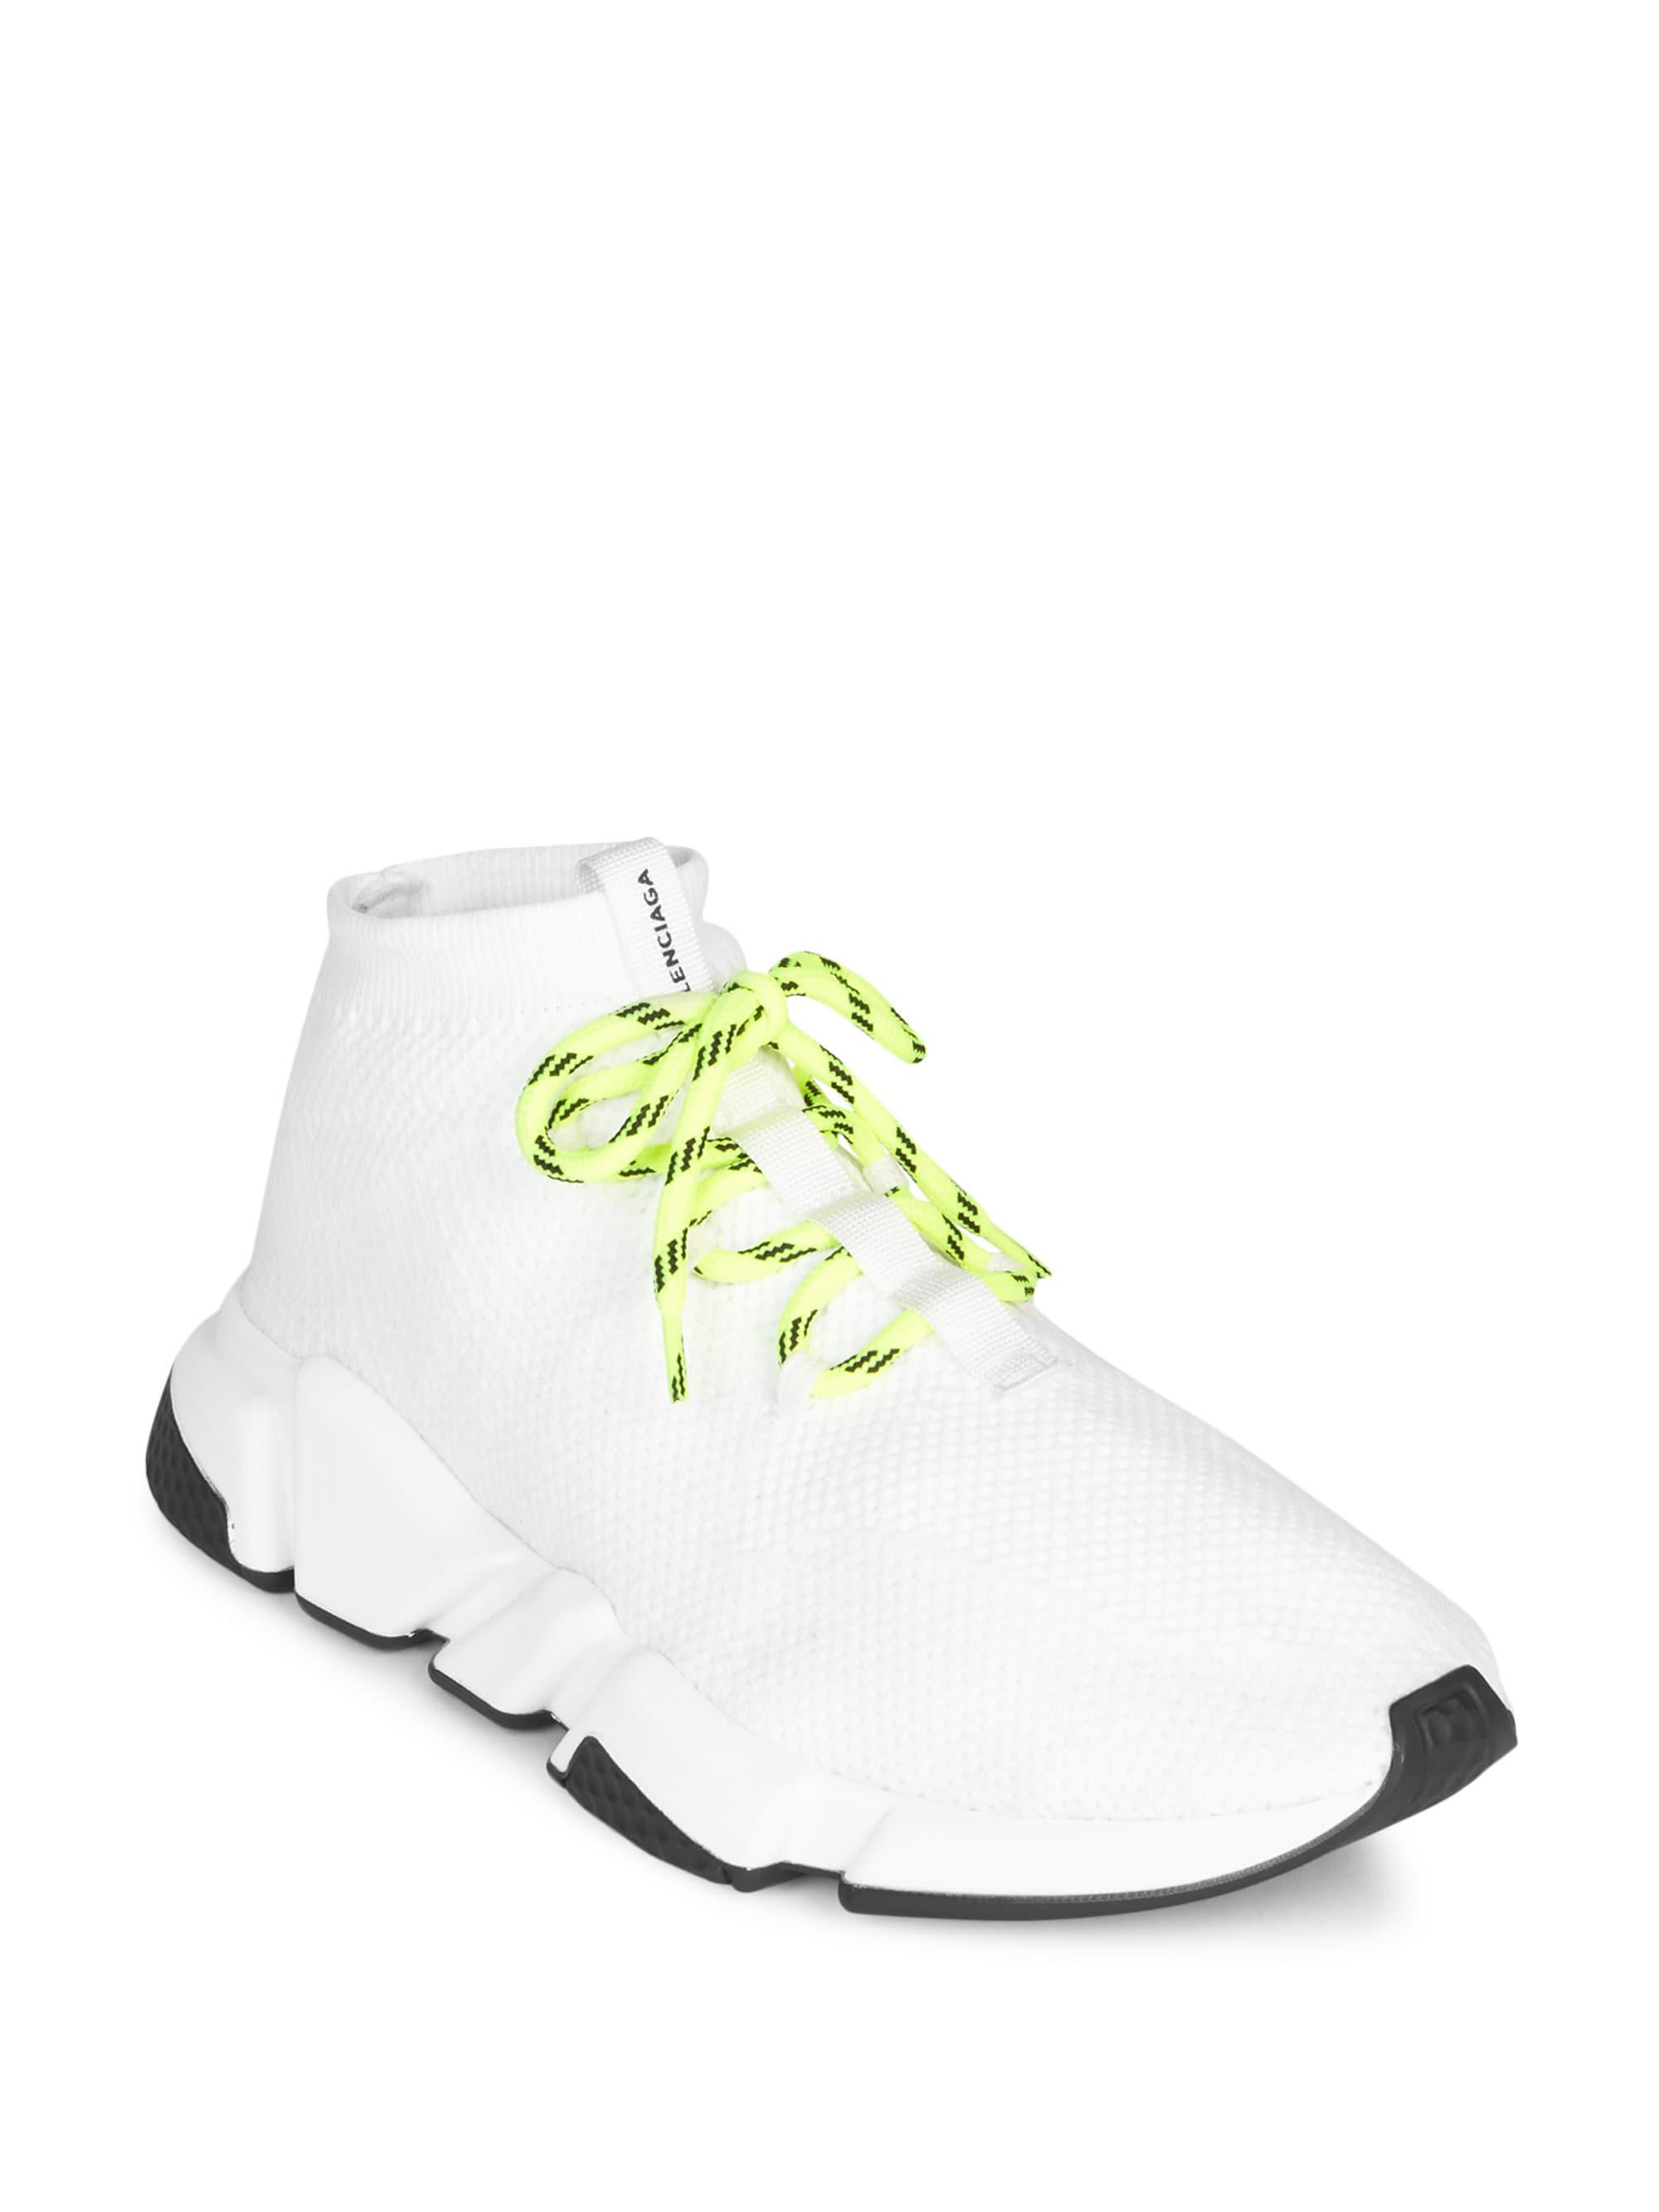 958dfbff21c8 Balenciaga Men s Lace-up Knit Sock Sneakers - White - Size 40 (7) in ...